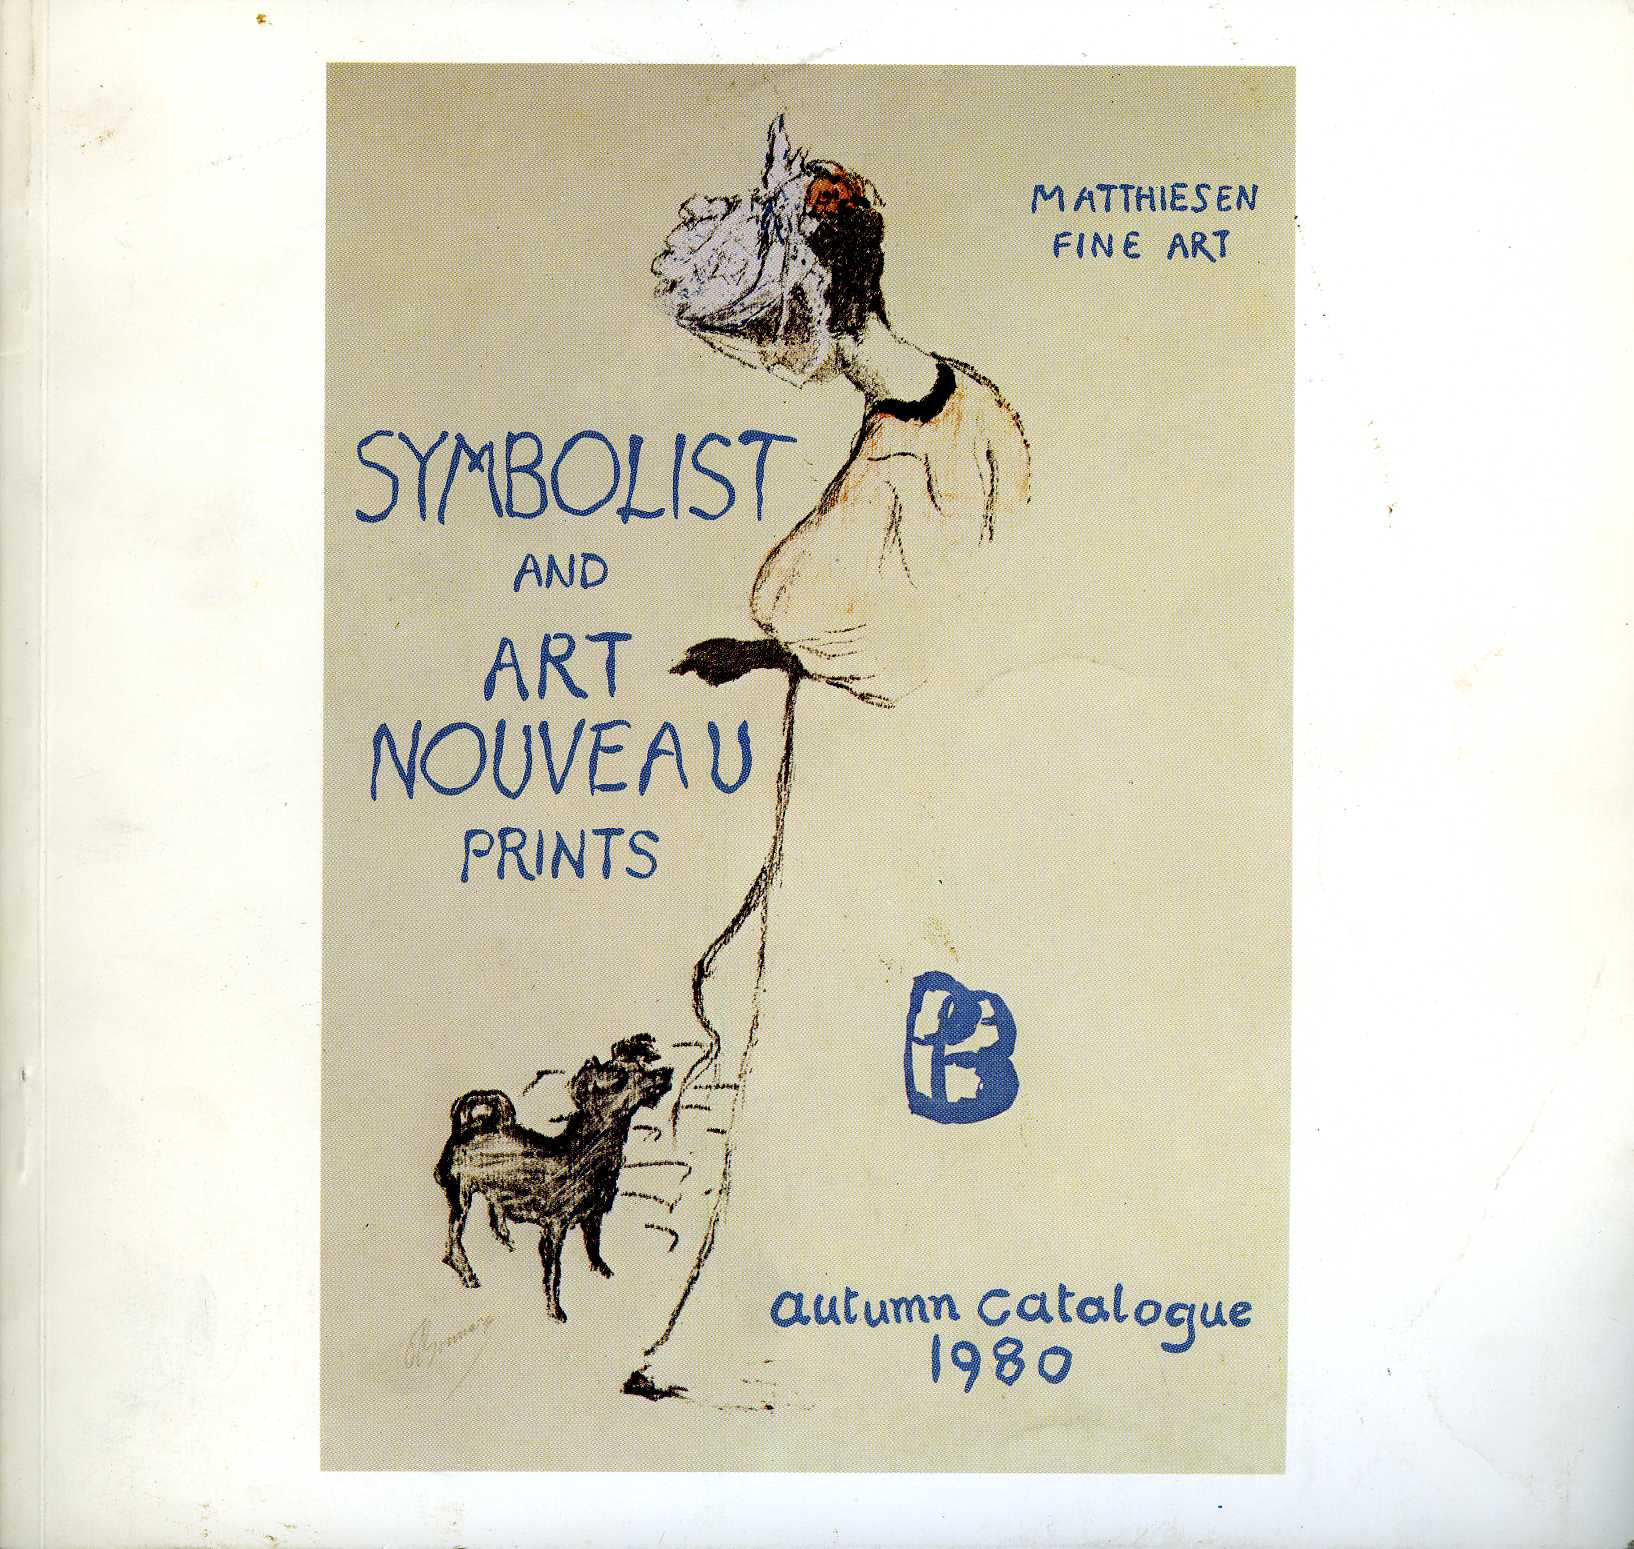 1980-Symbolist and Art Nouveau Prints-Autumn Catalogue.